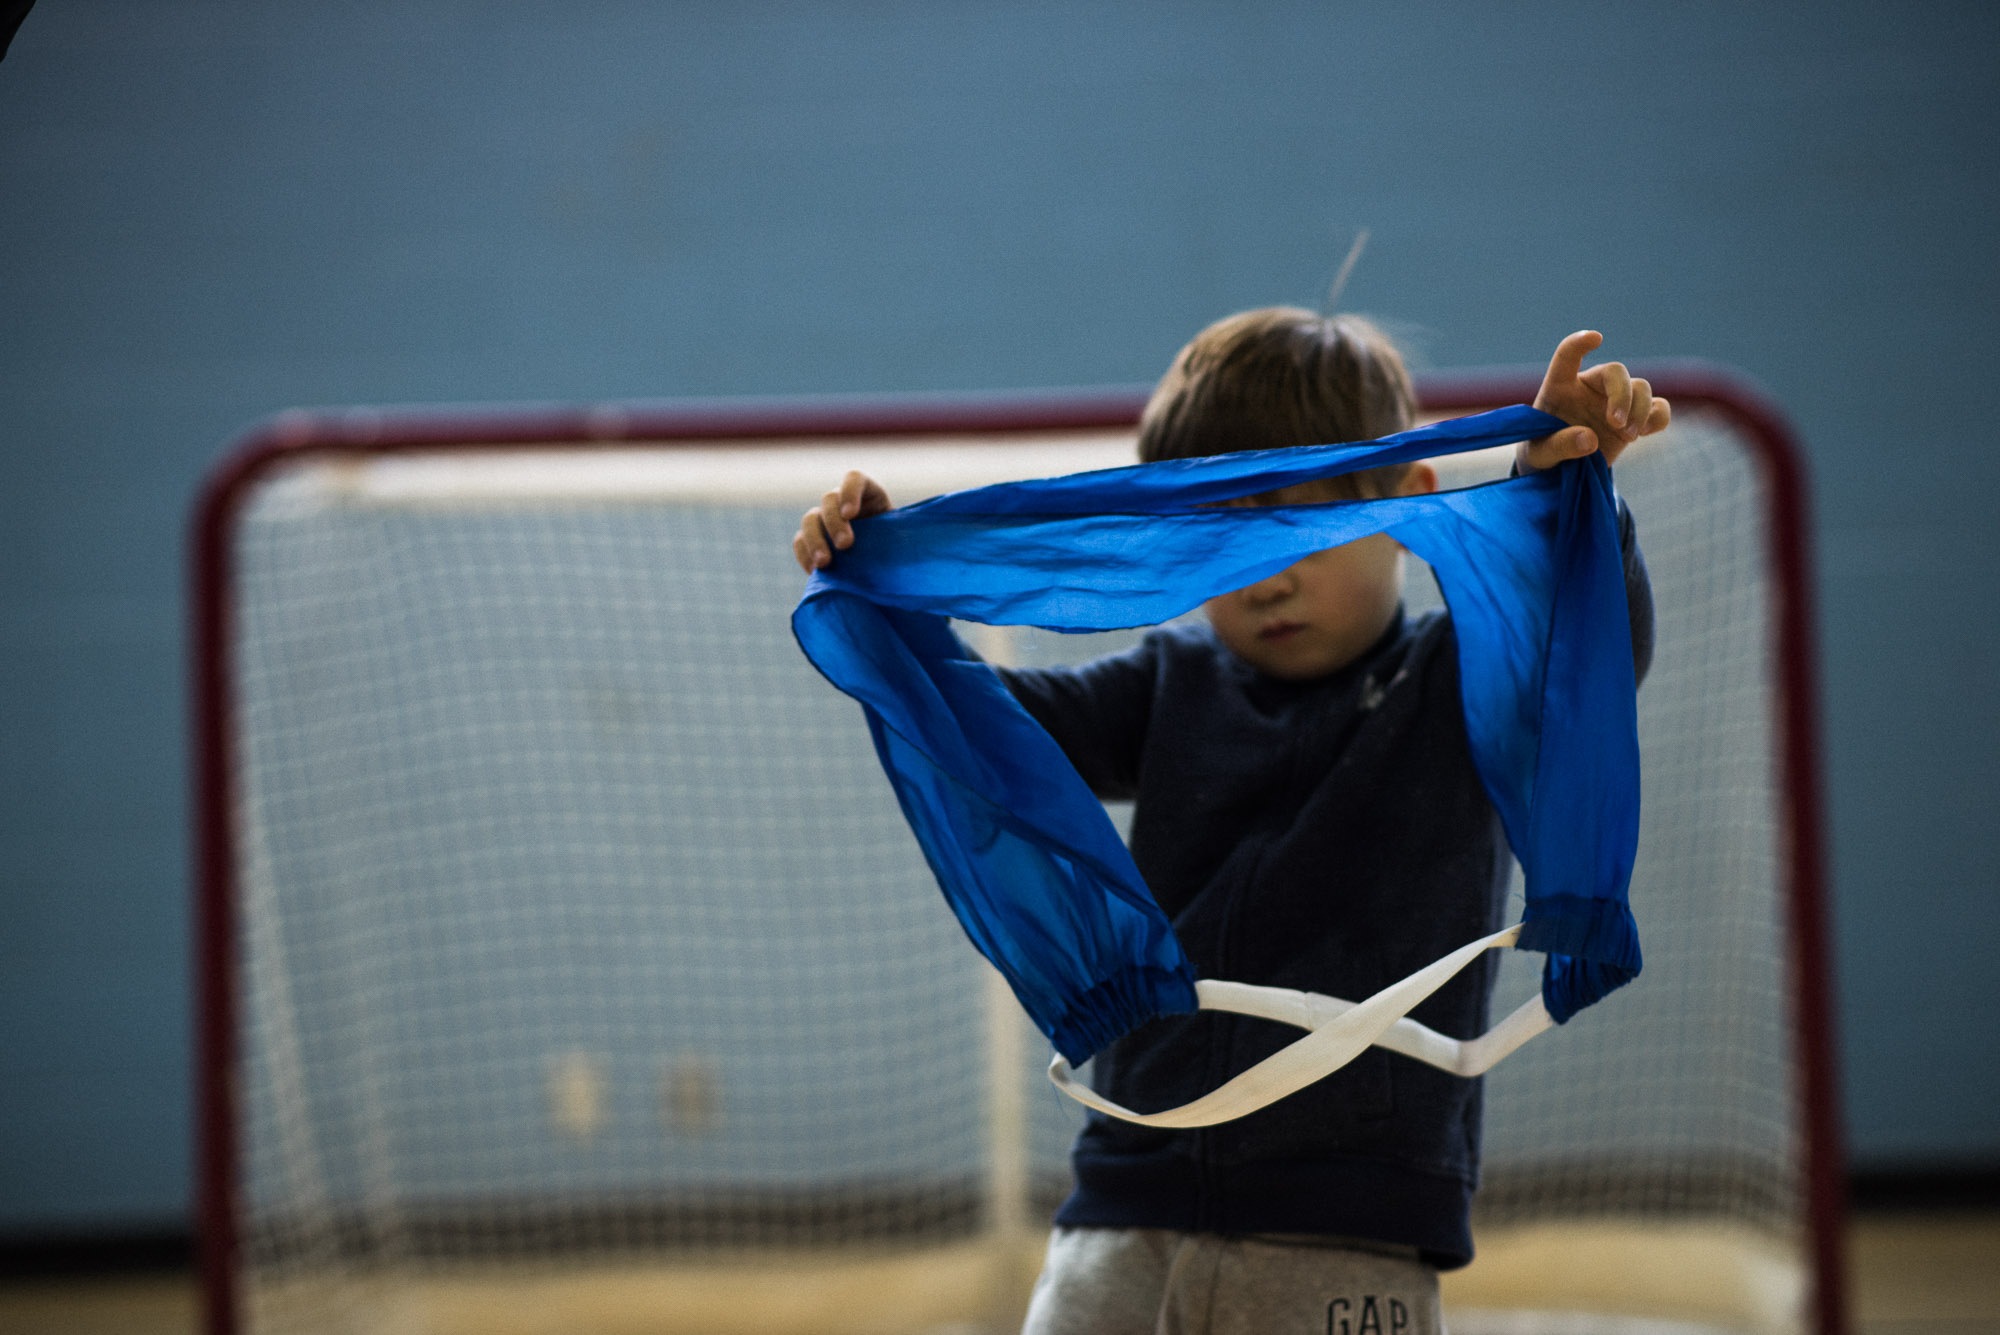 boy holds up blue soccer bib in front of his face